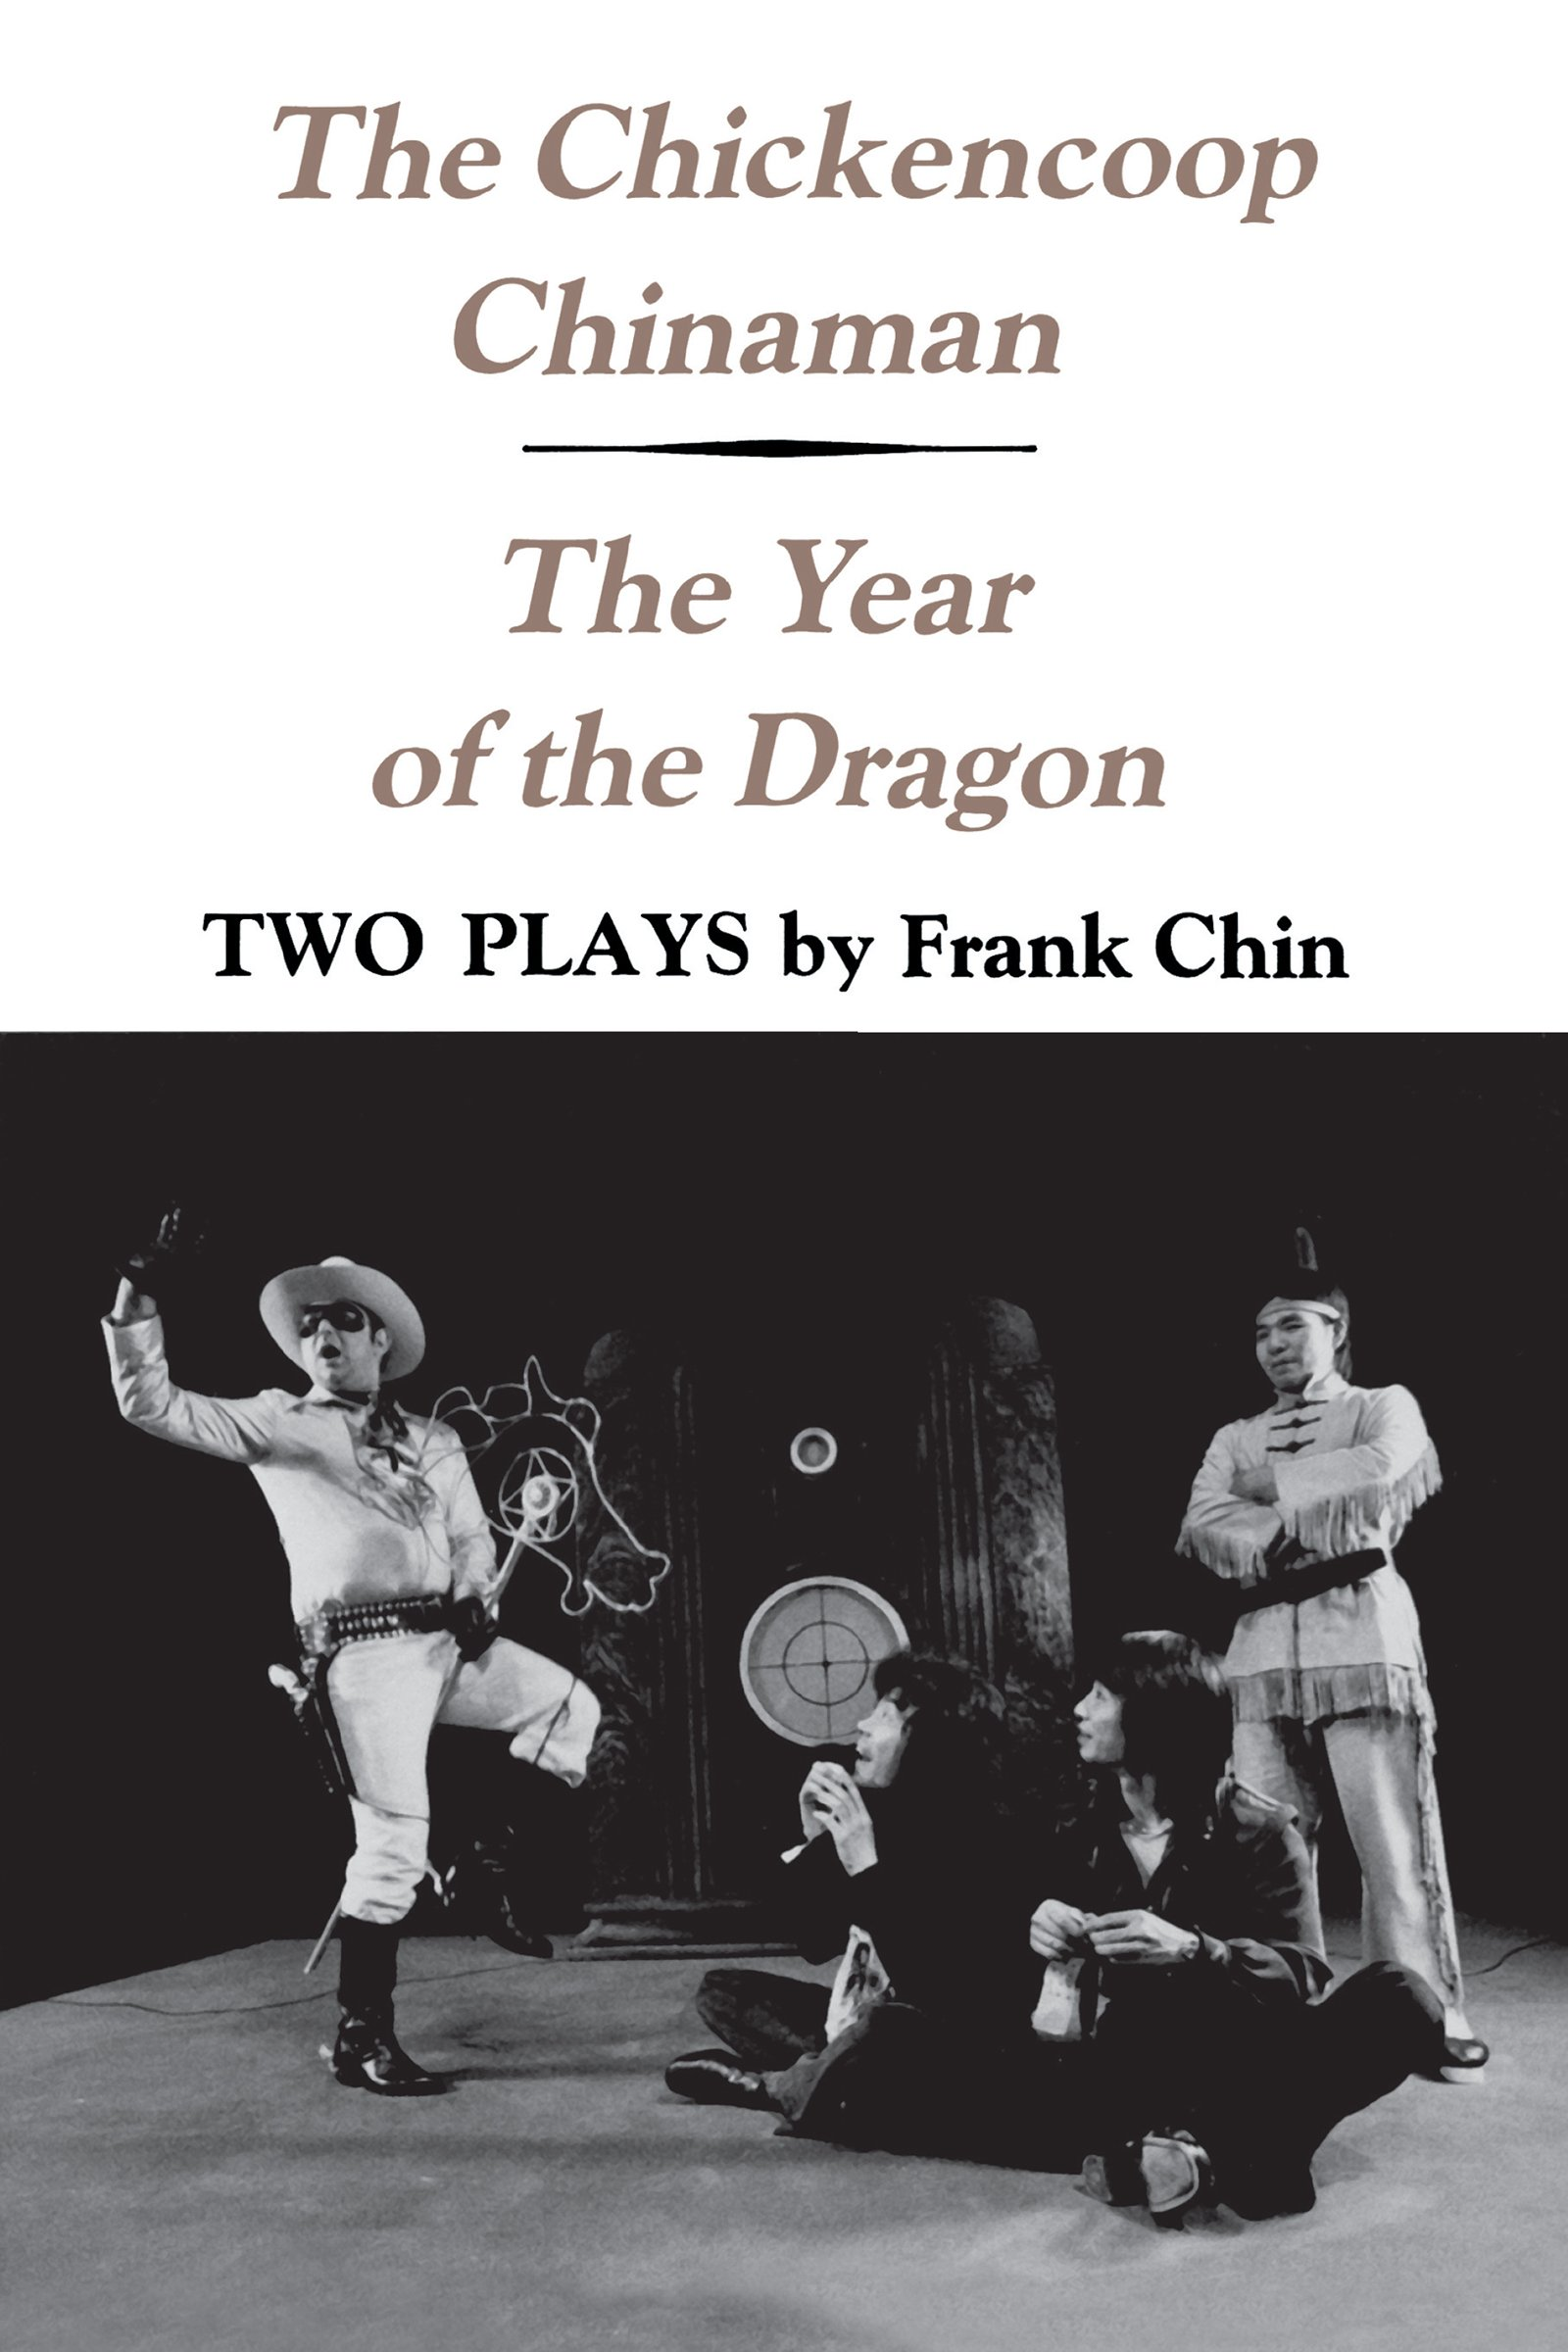 The Chickencoop Chinaman/The Year of the Dragon: Two Plays